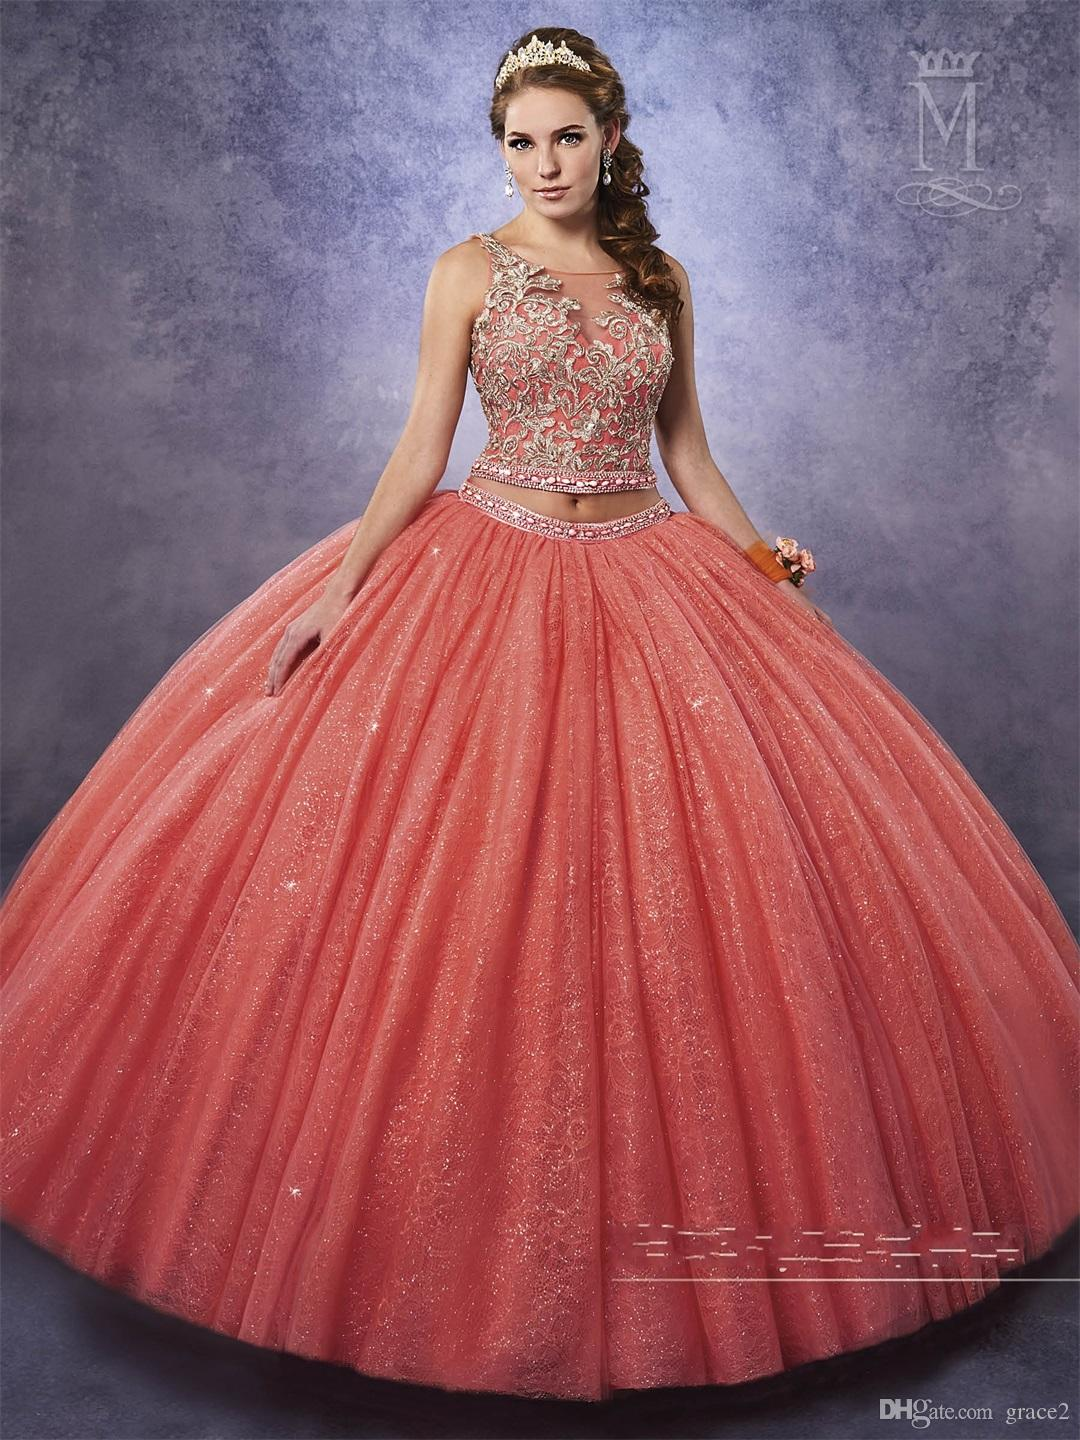 331f93210a2 Quinceanera Dresses 2017 New With Free Bolero And Sexy Back Sparking Tulle Ball  Gown Sweet 15 Dress Coral Vestidos De 15 Anos Canada 2019 From Grace2